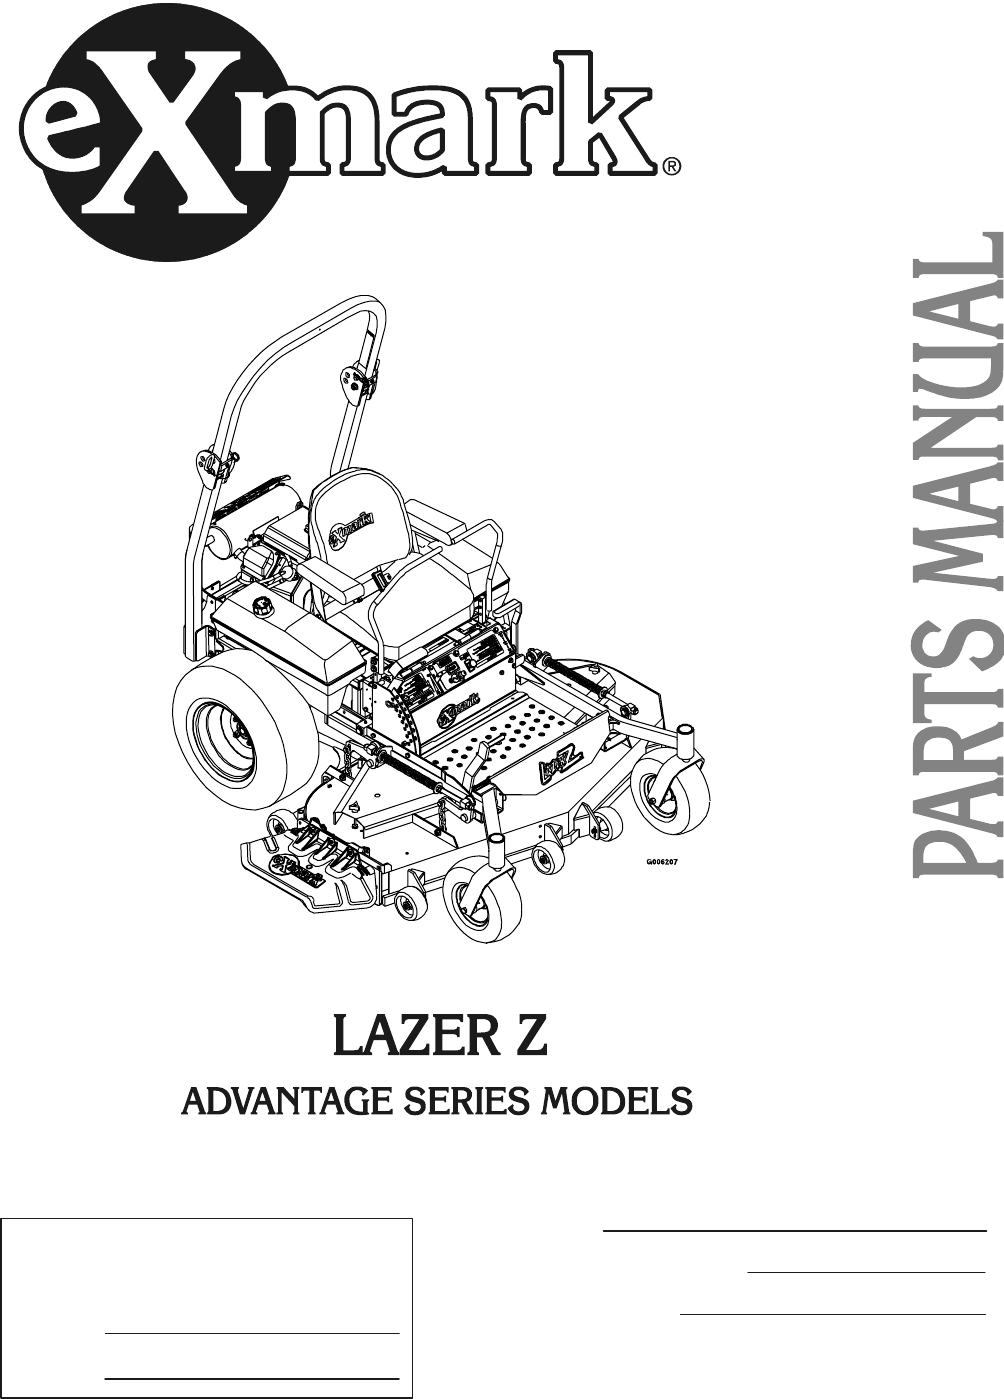 exmark lawn mower advantage series user guide